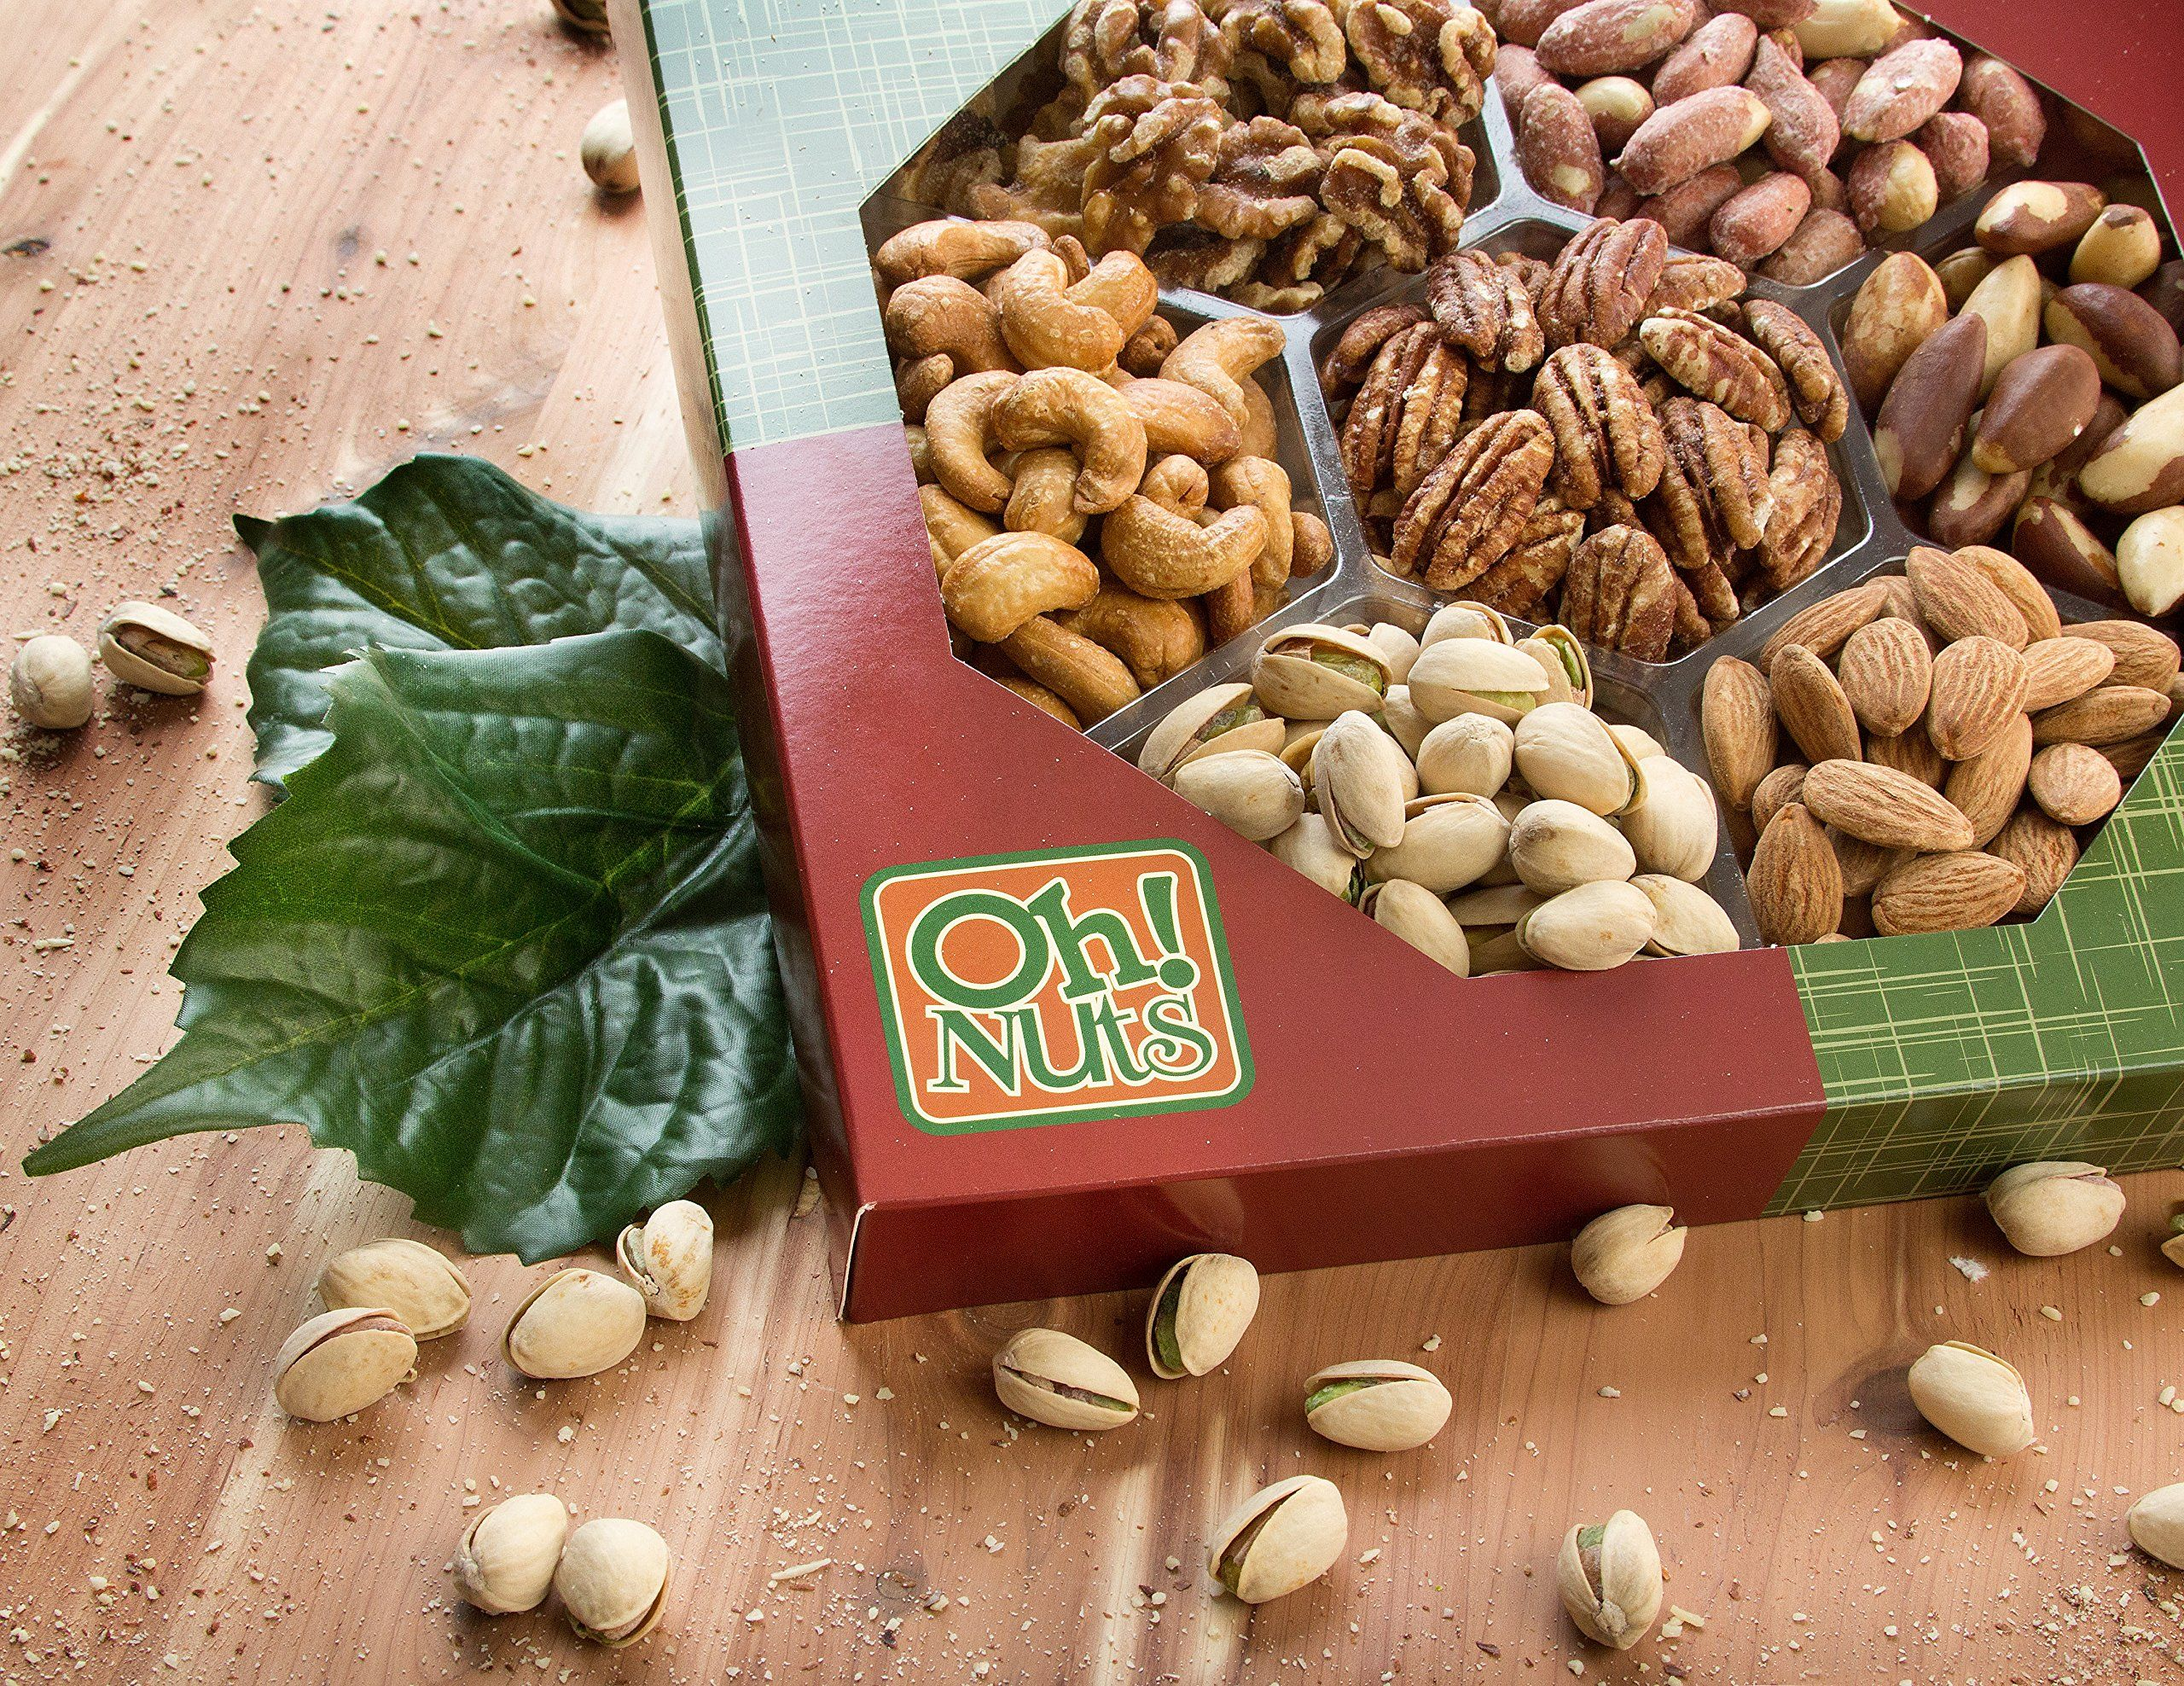 Healthy Snacks Dry Roasted Nuts Unsalted 7 Variety Food Gift No Additives No Oil No Salt Great Gift For Him Or Her Vegans And Vege Variety Food Food Food Gifts